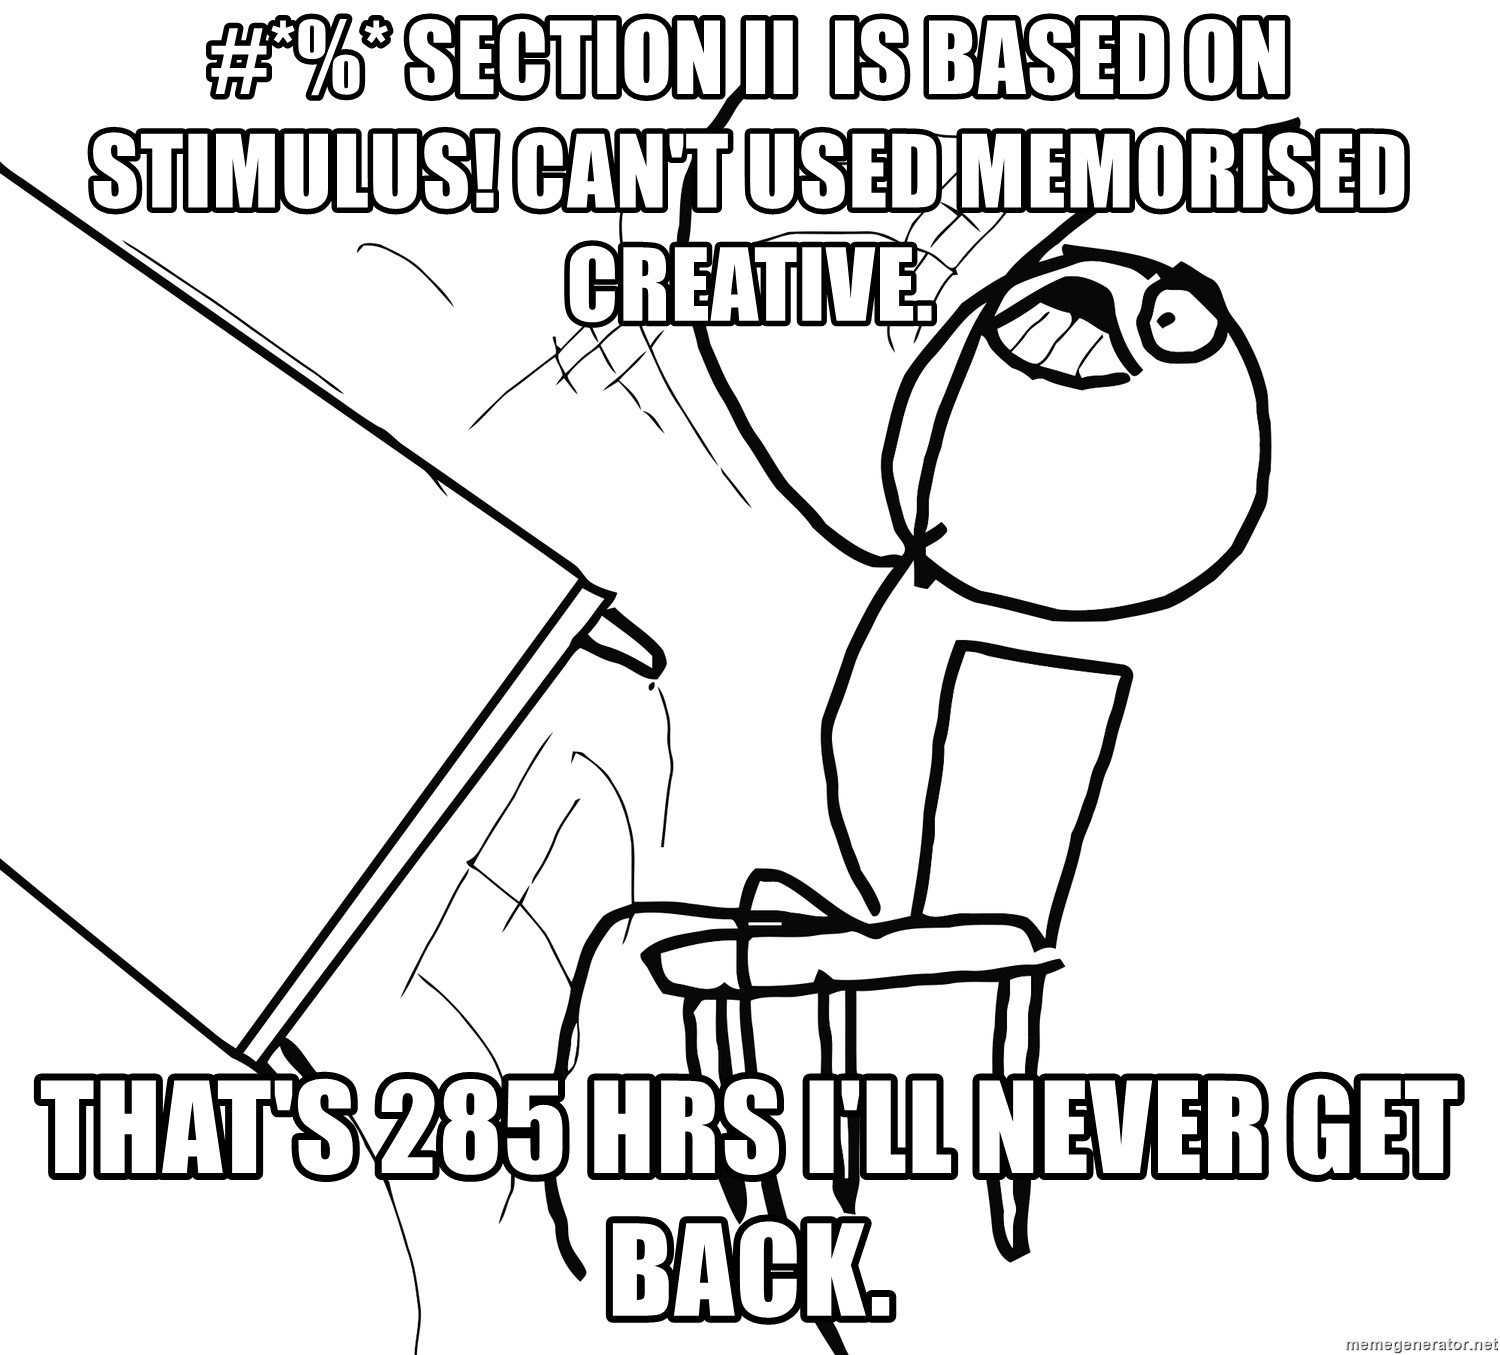 Desk Flip Rage Guy - #*%* Section ii  is based on stimulus! can't used memorised creative. that's 285 hrs i'll never get back.